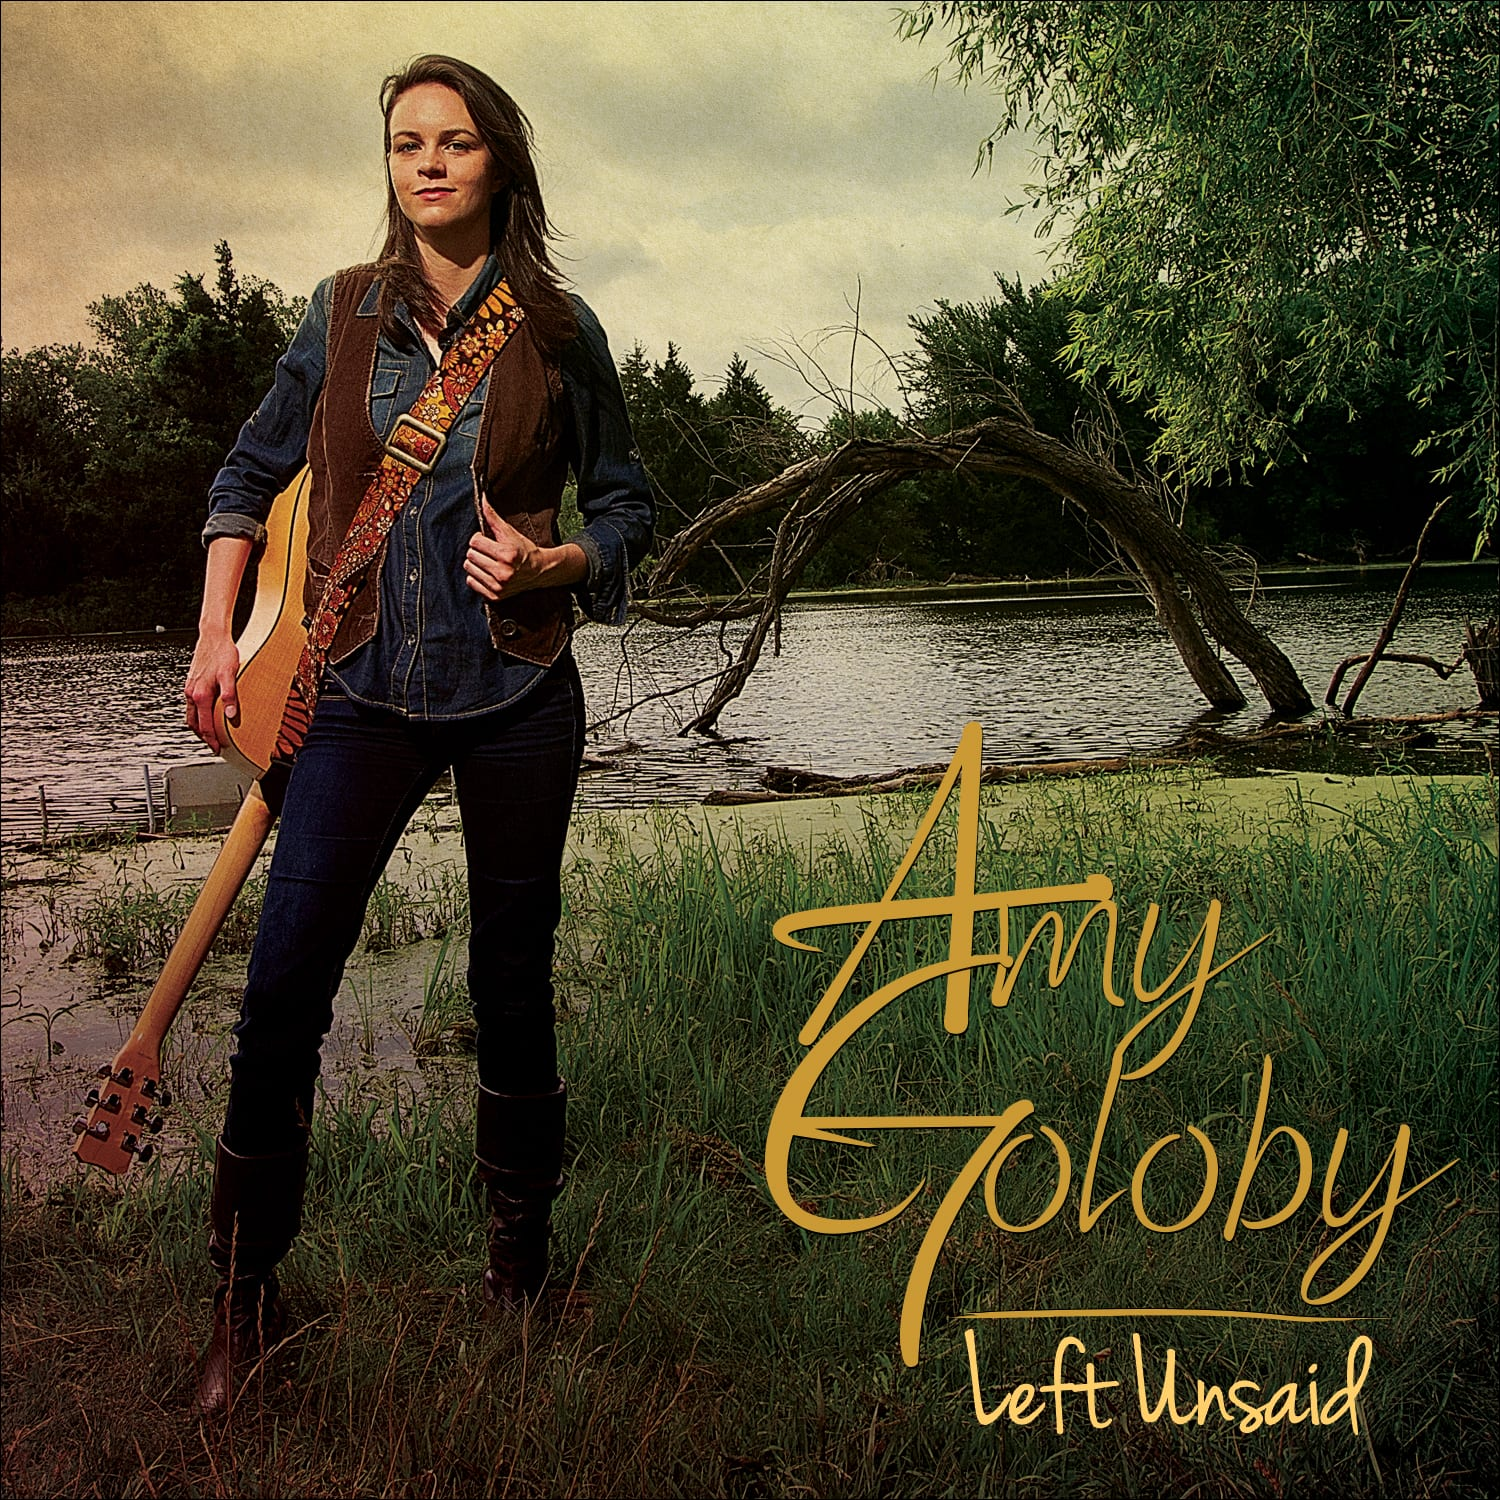 amy goloby left unsaid album cover